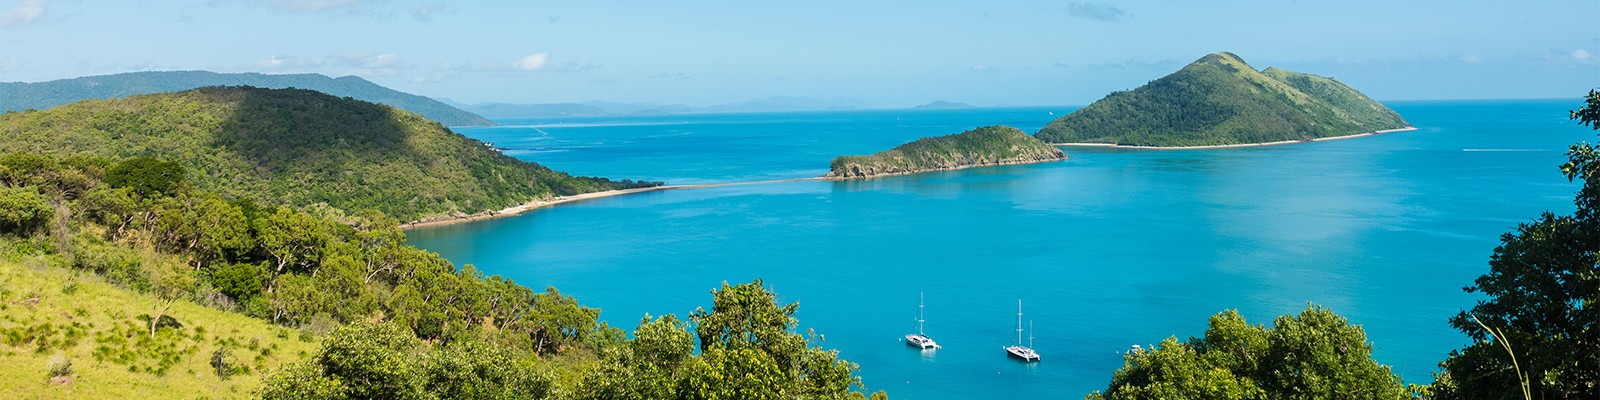 The Whitsundays and Great Barrief reef - Australia Honeymoon packages - guide header